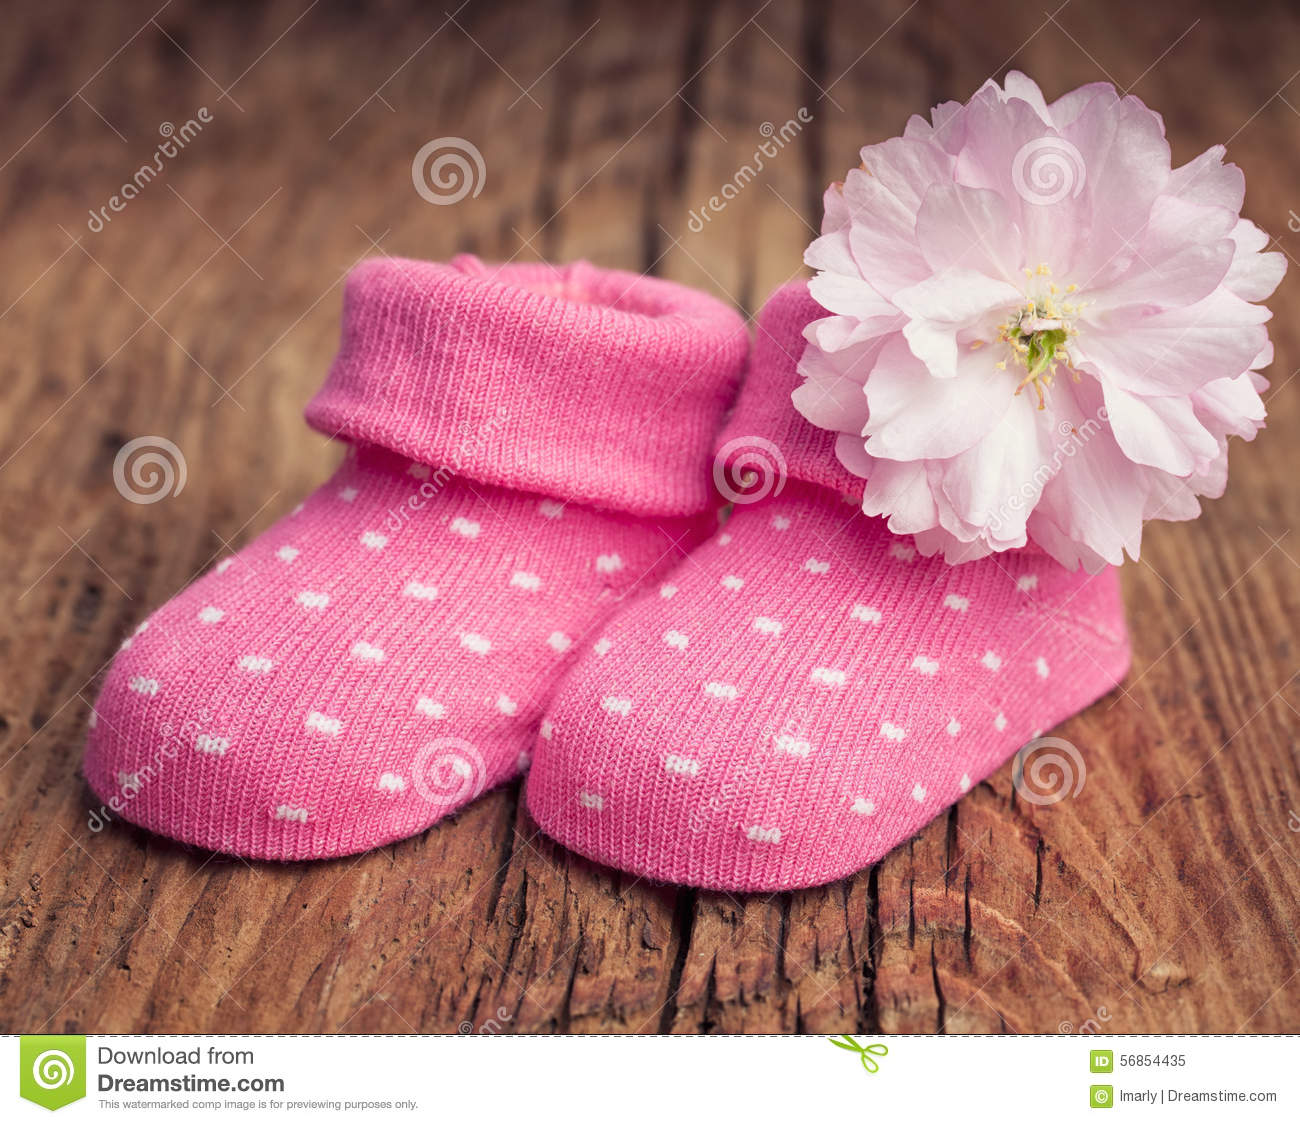 Baby girl shoes with polka dots and pink flower stock image image baby girl shoes with polka dots and pink flower mightylinksfo